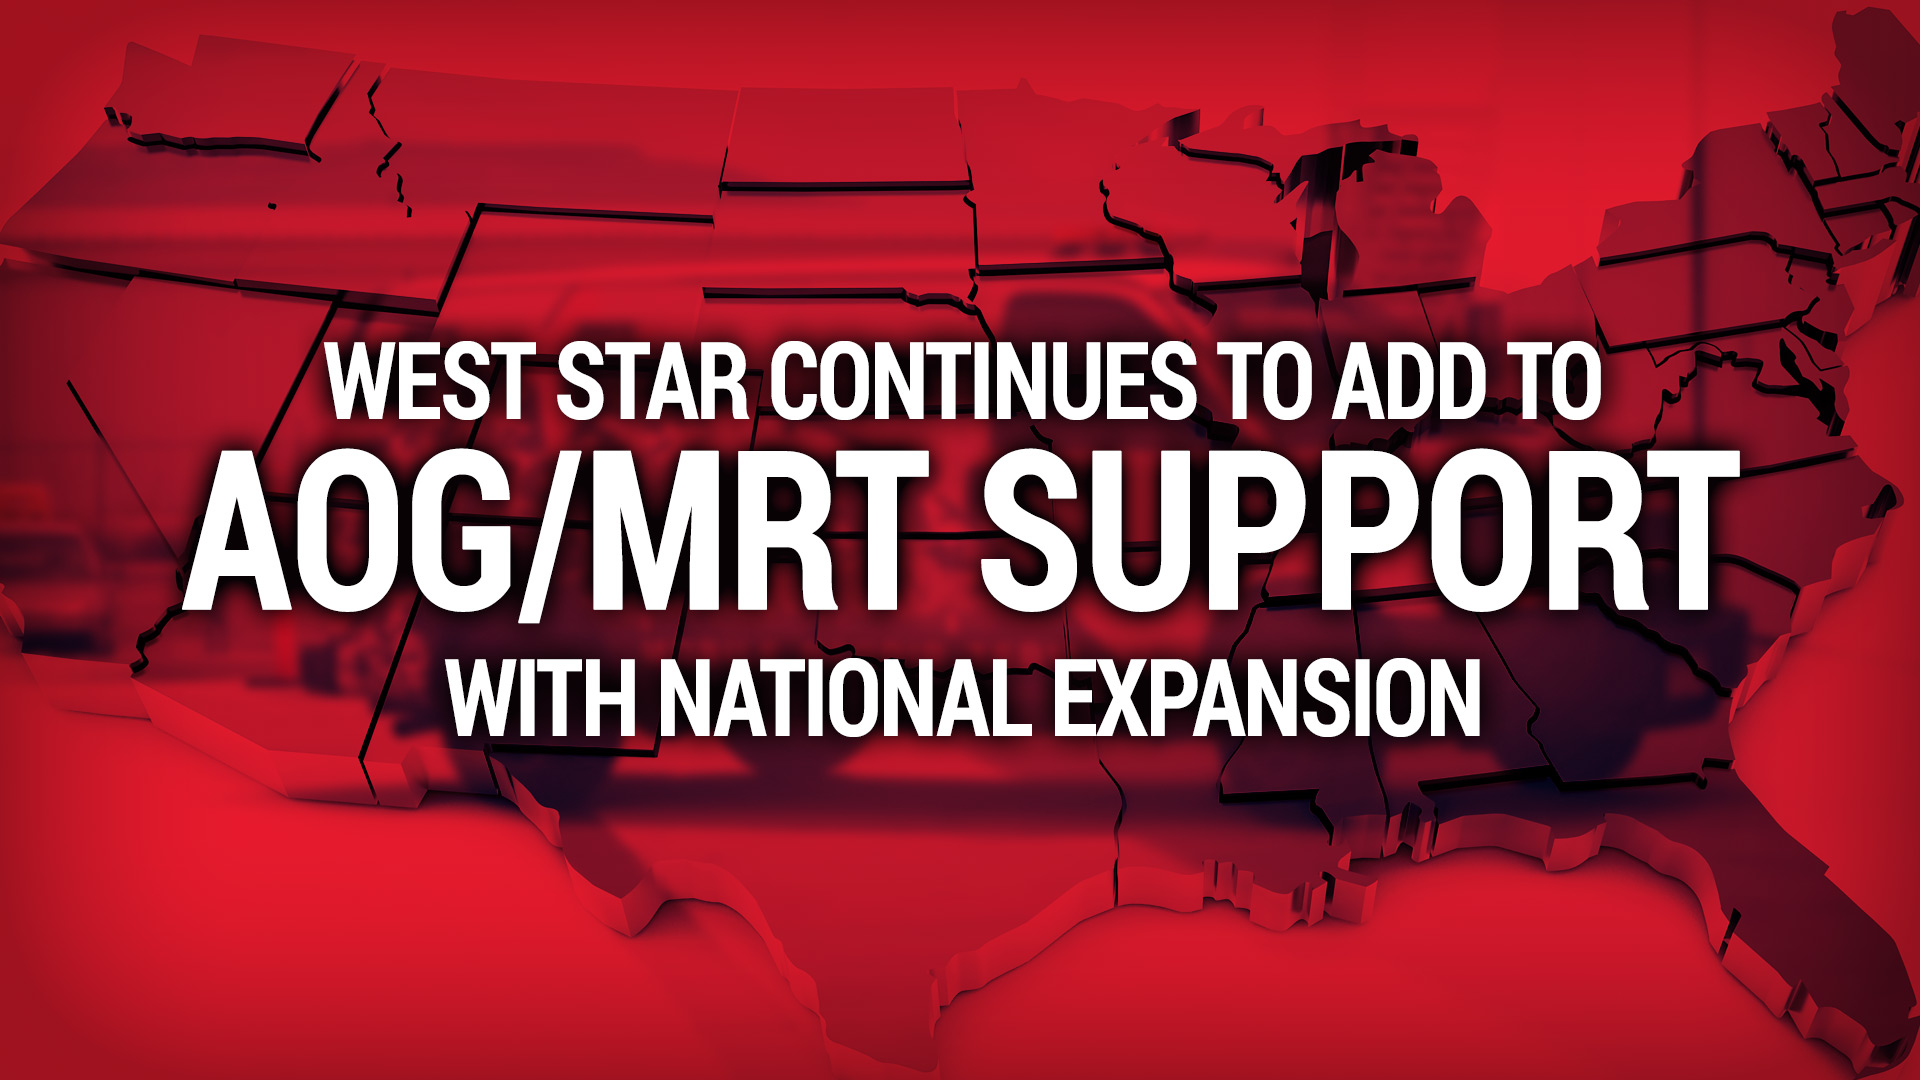 AOG/MRT Support You Can Count On!